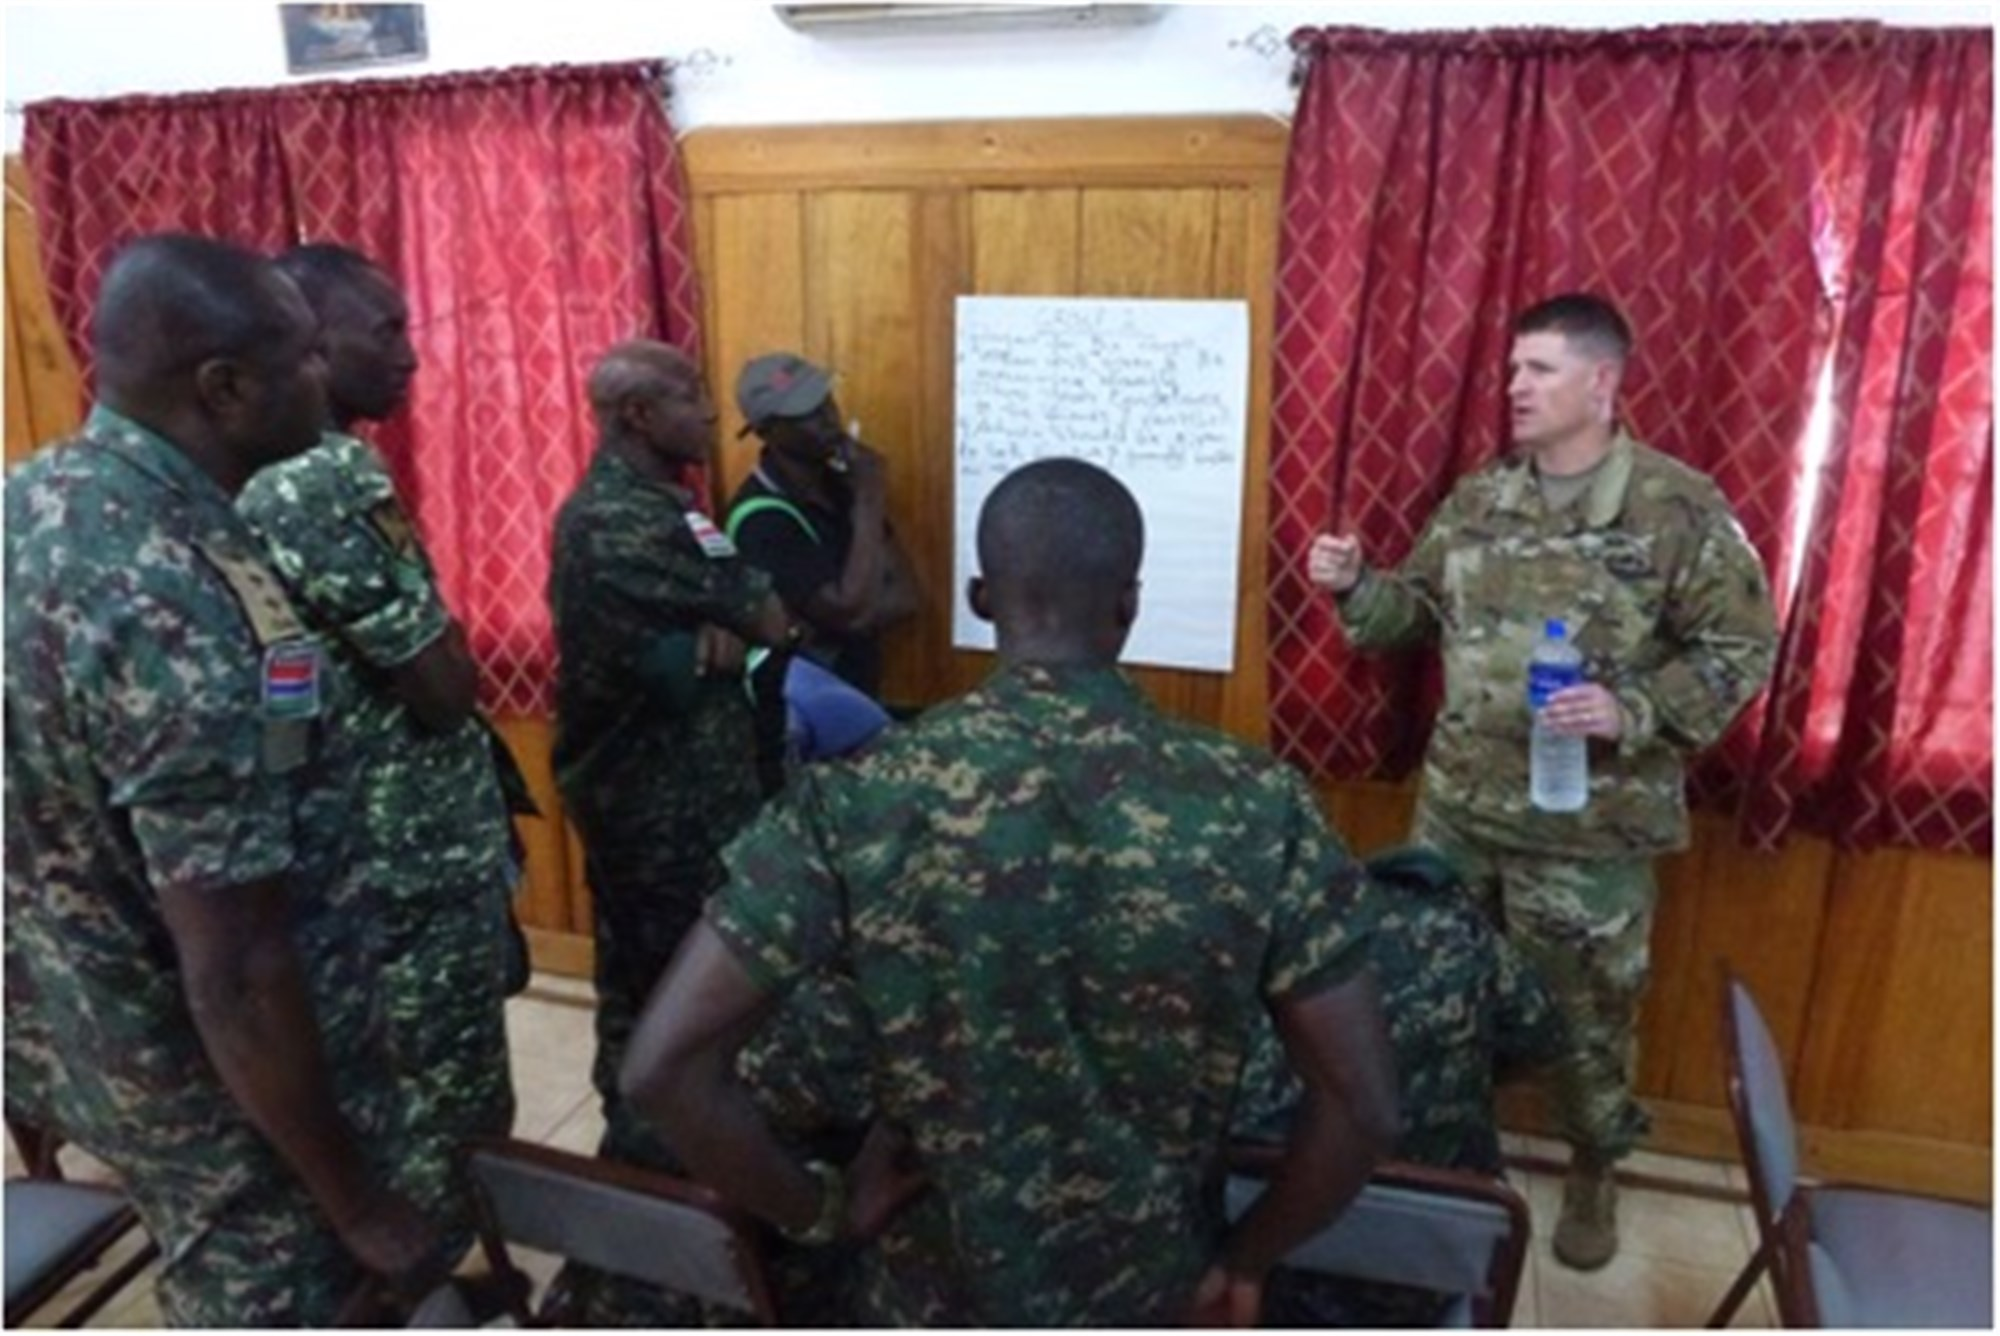 Chpalin (Maj.) Matthew Madison, the U.S. Army Africa Chaplain, right, leads a small group session with the Gambia Armed Forces chaplains during an event held April 23-26, 2019, at the Gambia pastoral Institute in Banjul, Gambia. (U.S. Army photo)